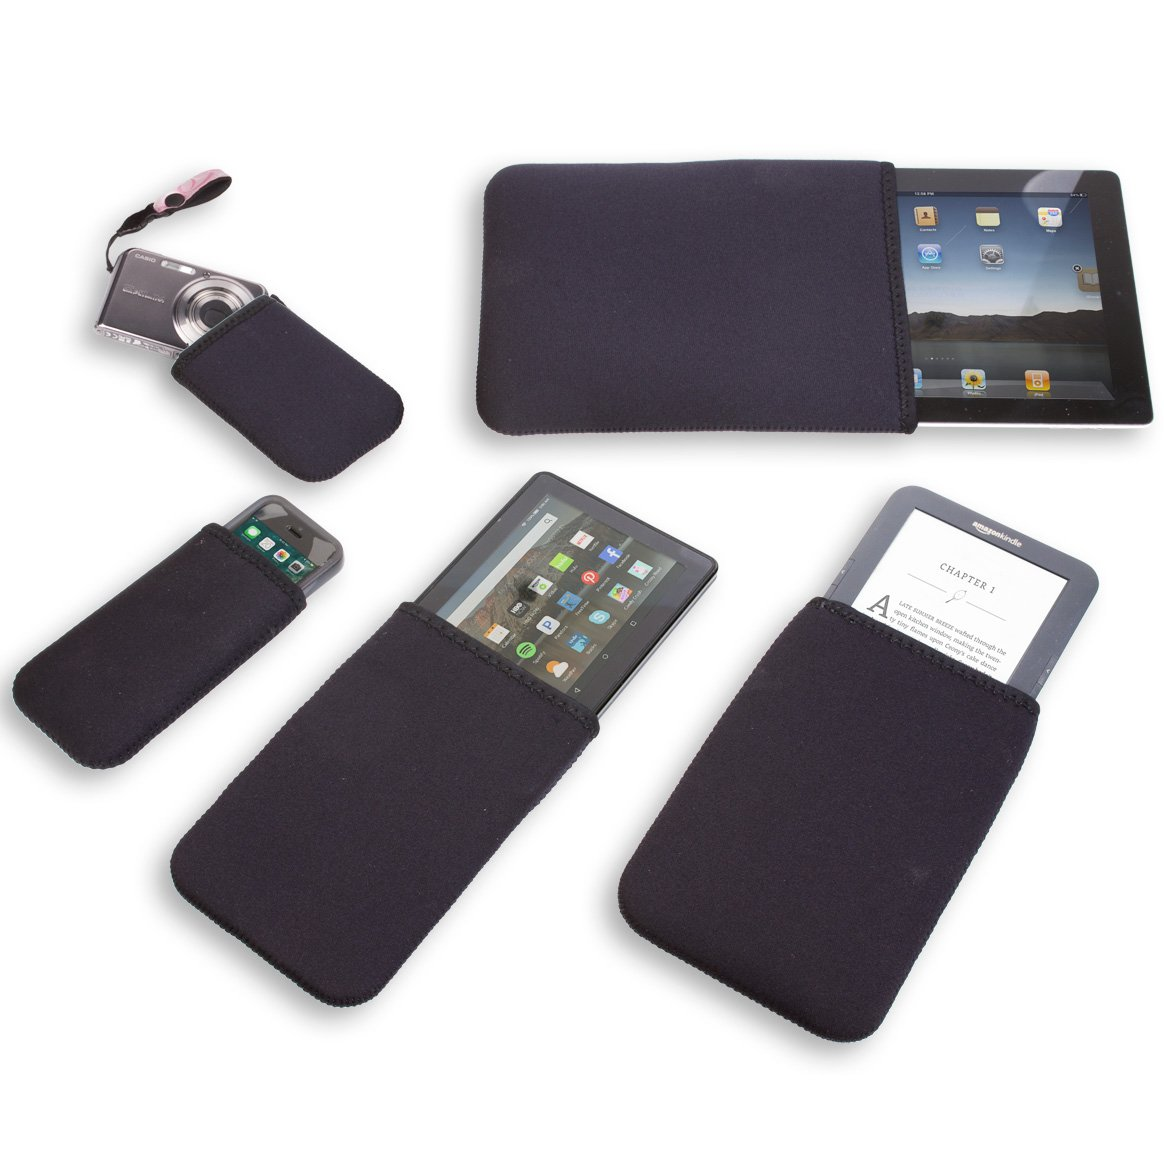 OP/TECH USA 4601387 Smart Sleeve 387 (Black) - Neoprene Sleeve by OP/TECH USA (Image #2)